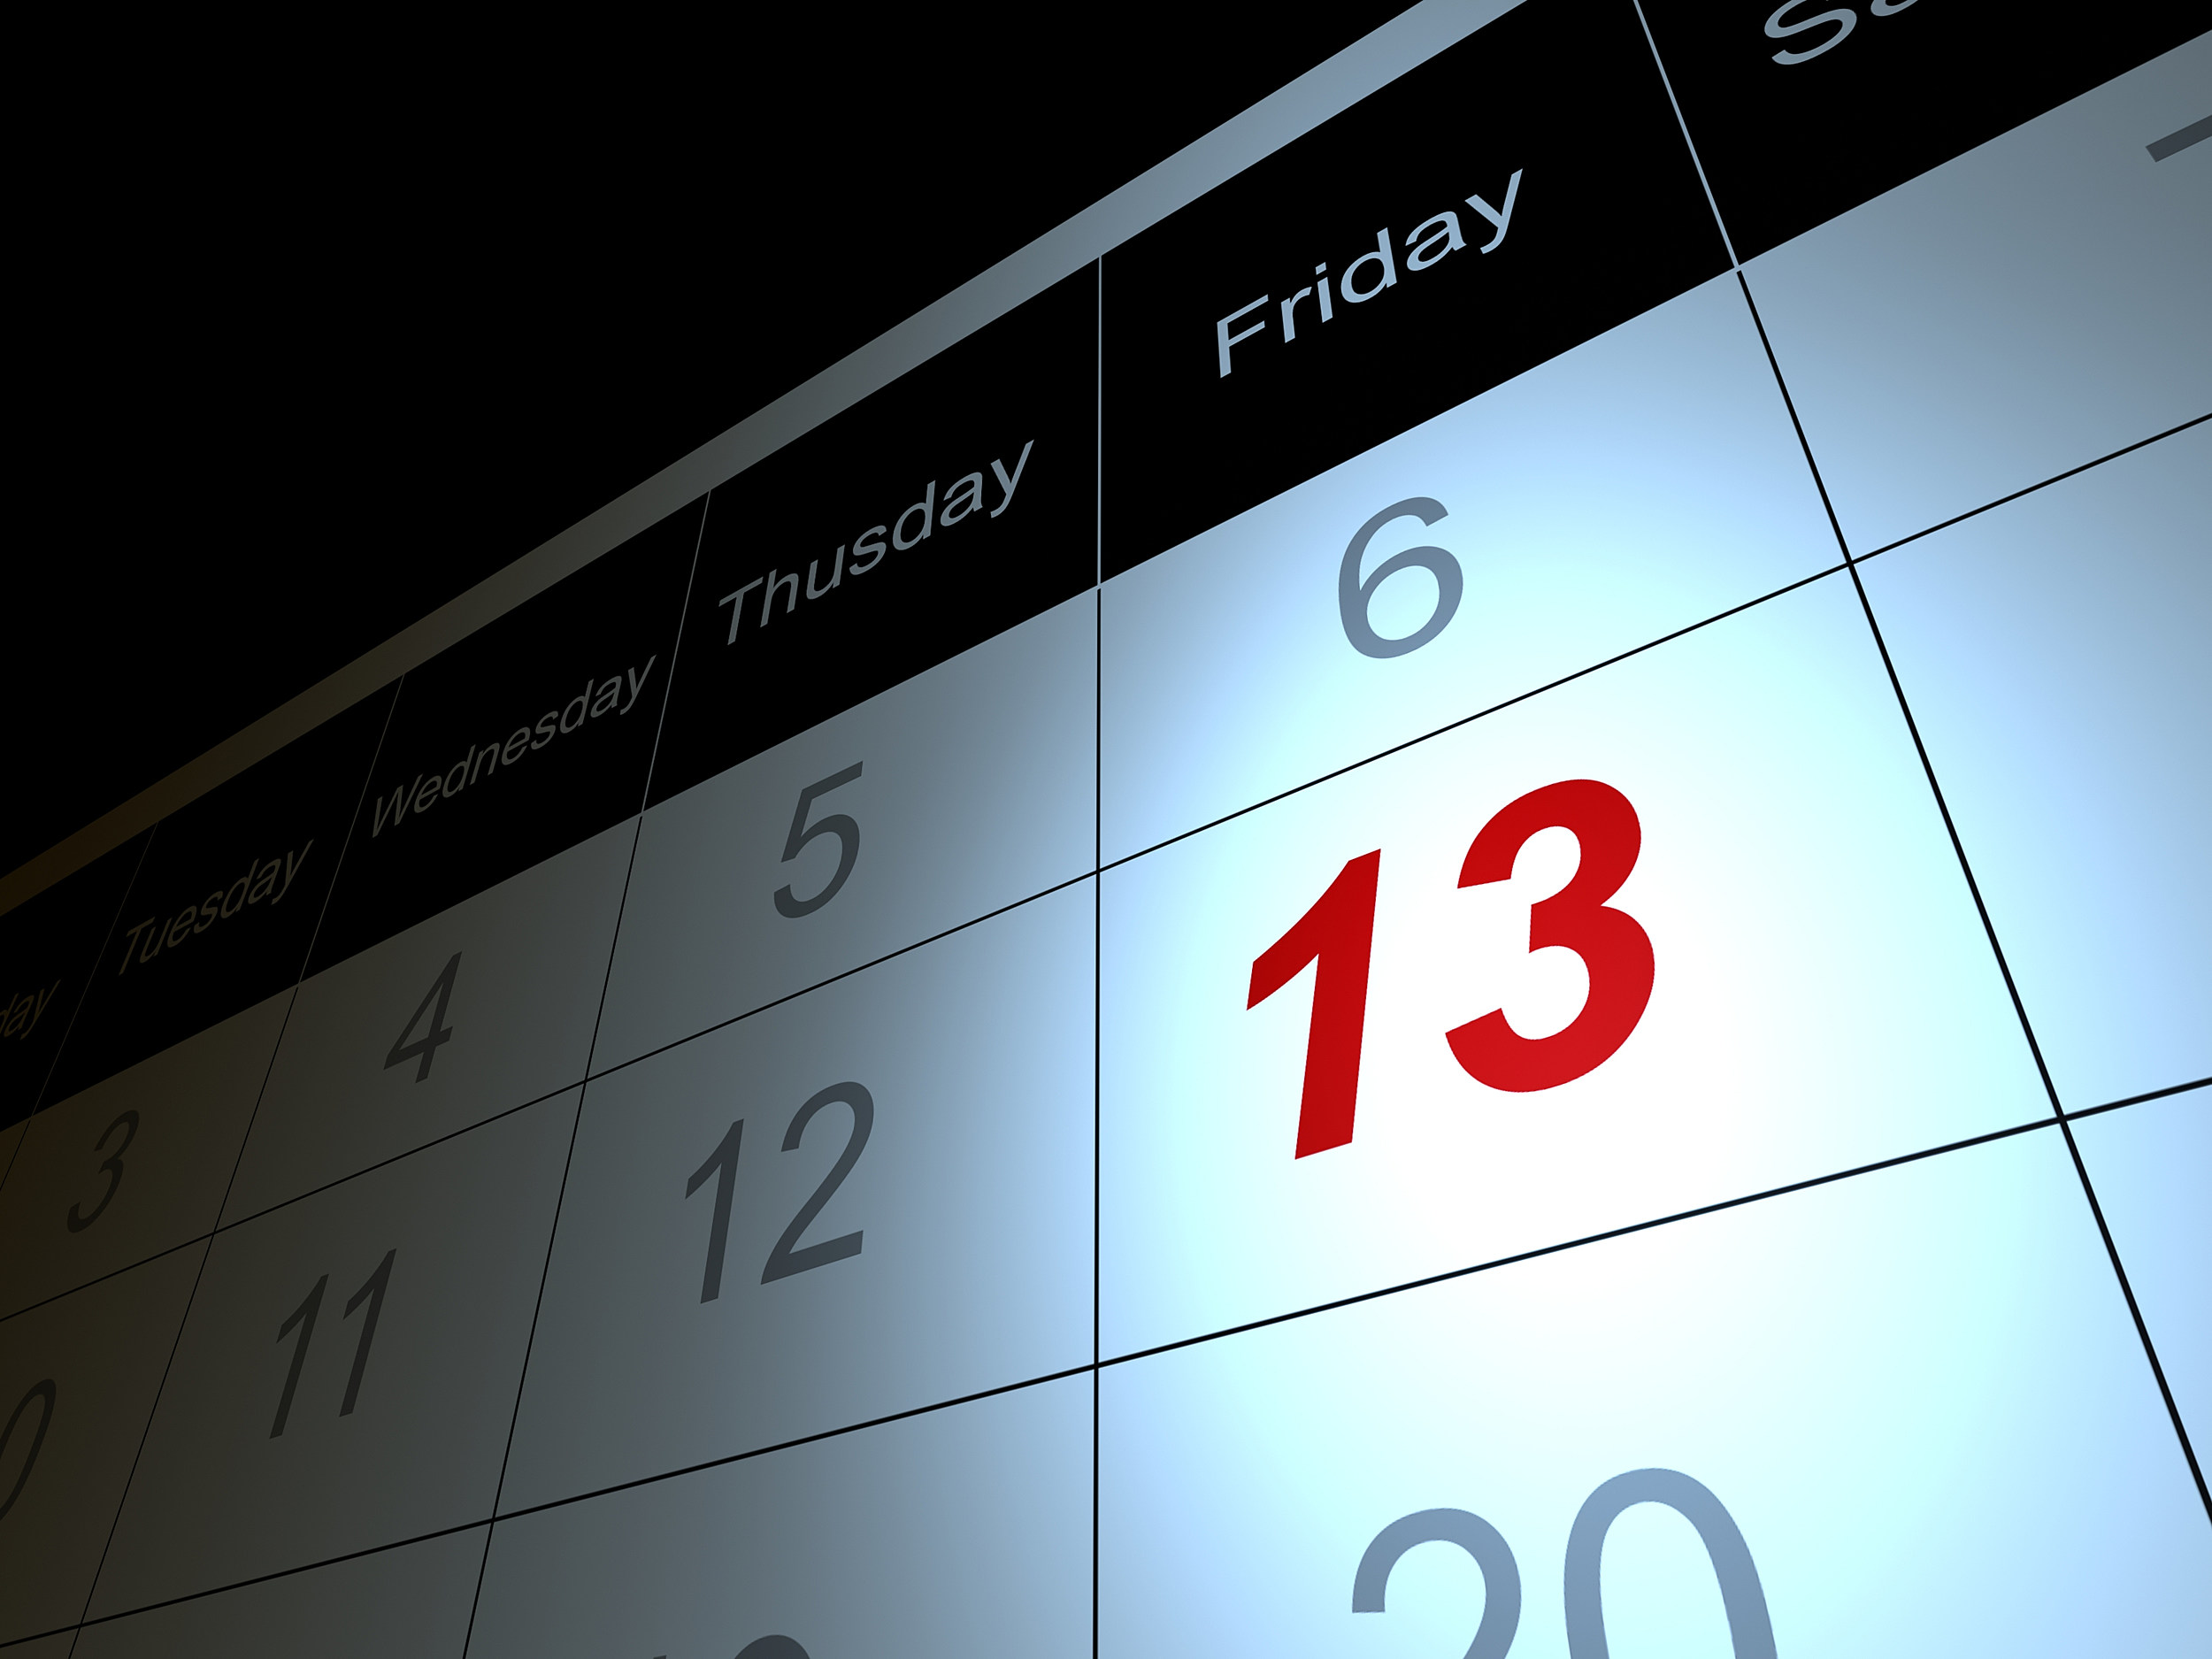 Friday the 13 date in red on calendar